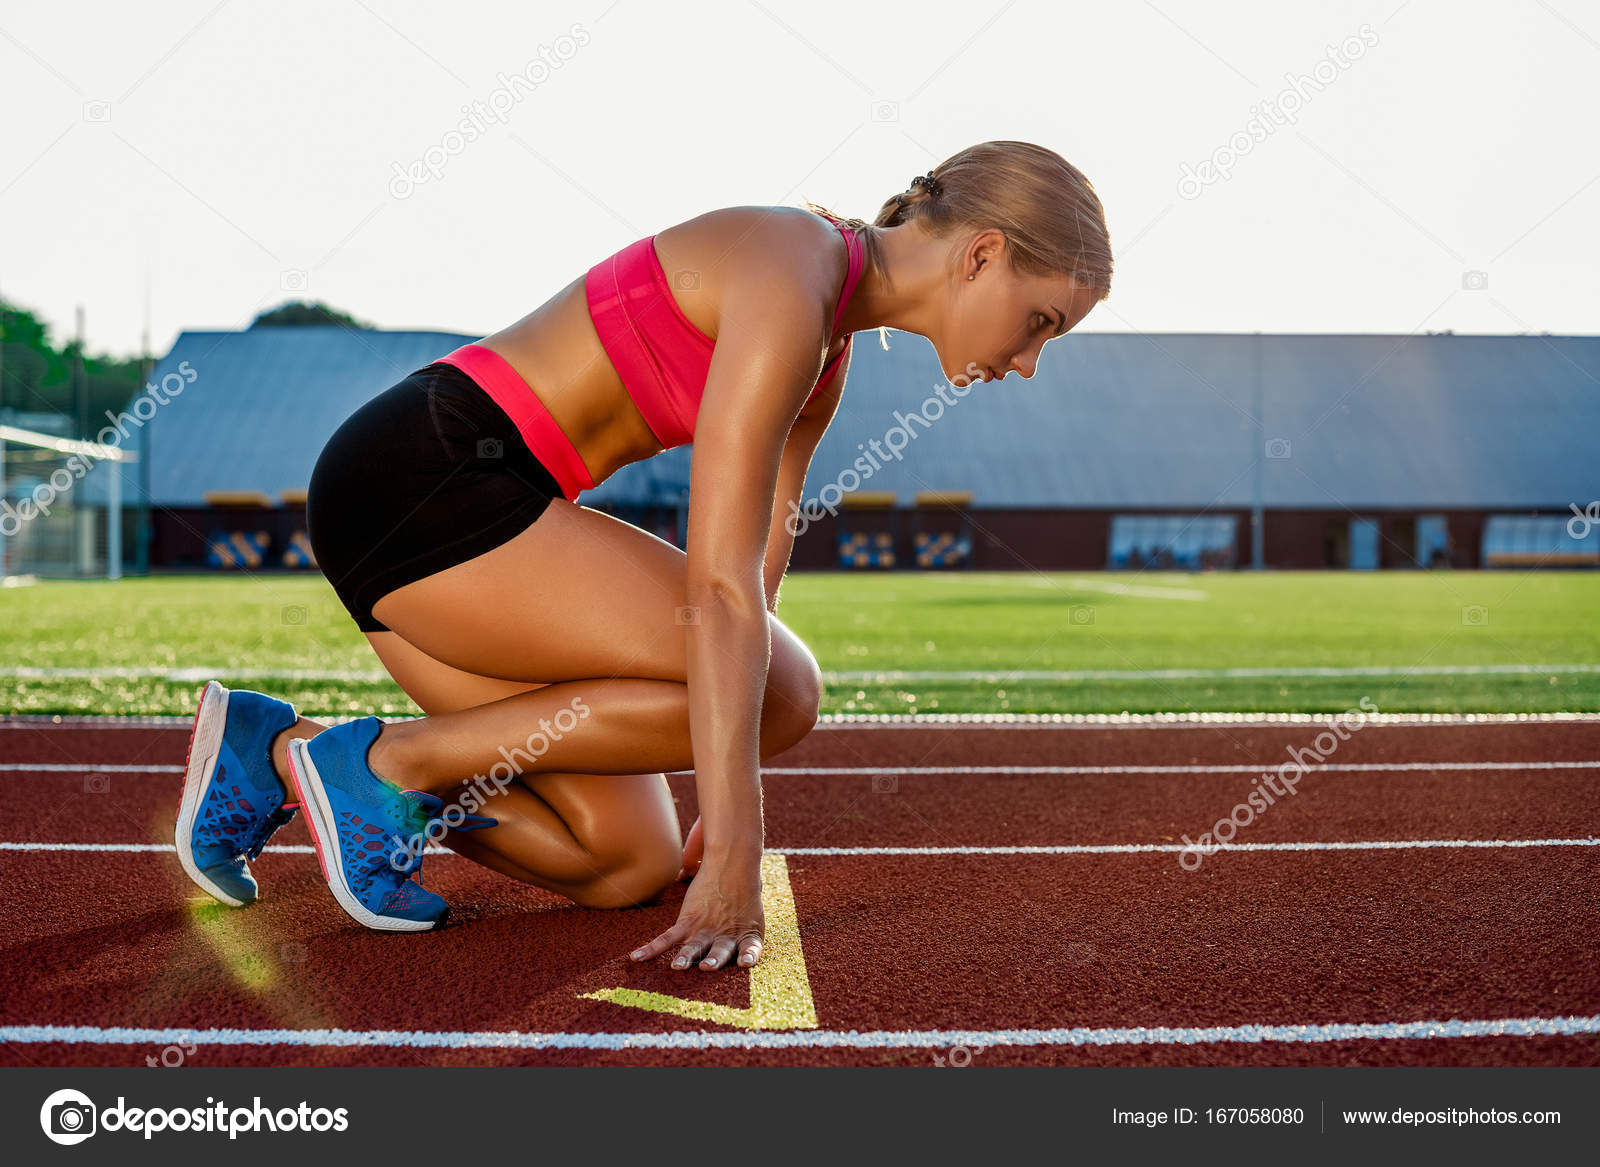 Young Woman Athlete At Starting Position Ready To Start A Race On Racetrack Stock